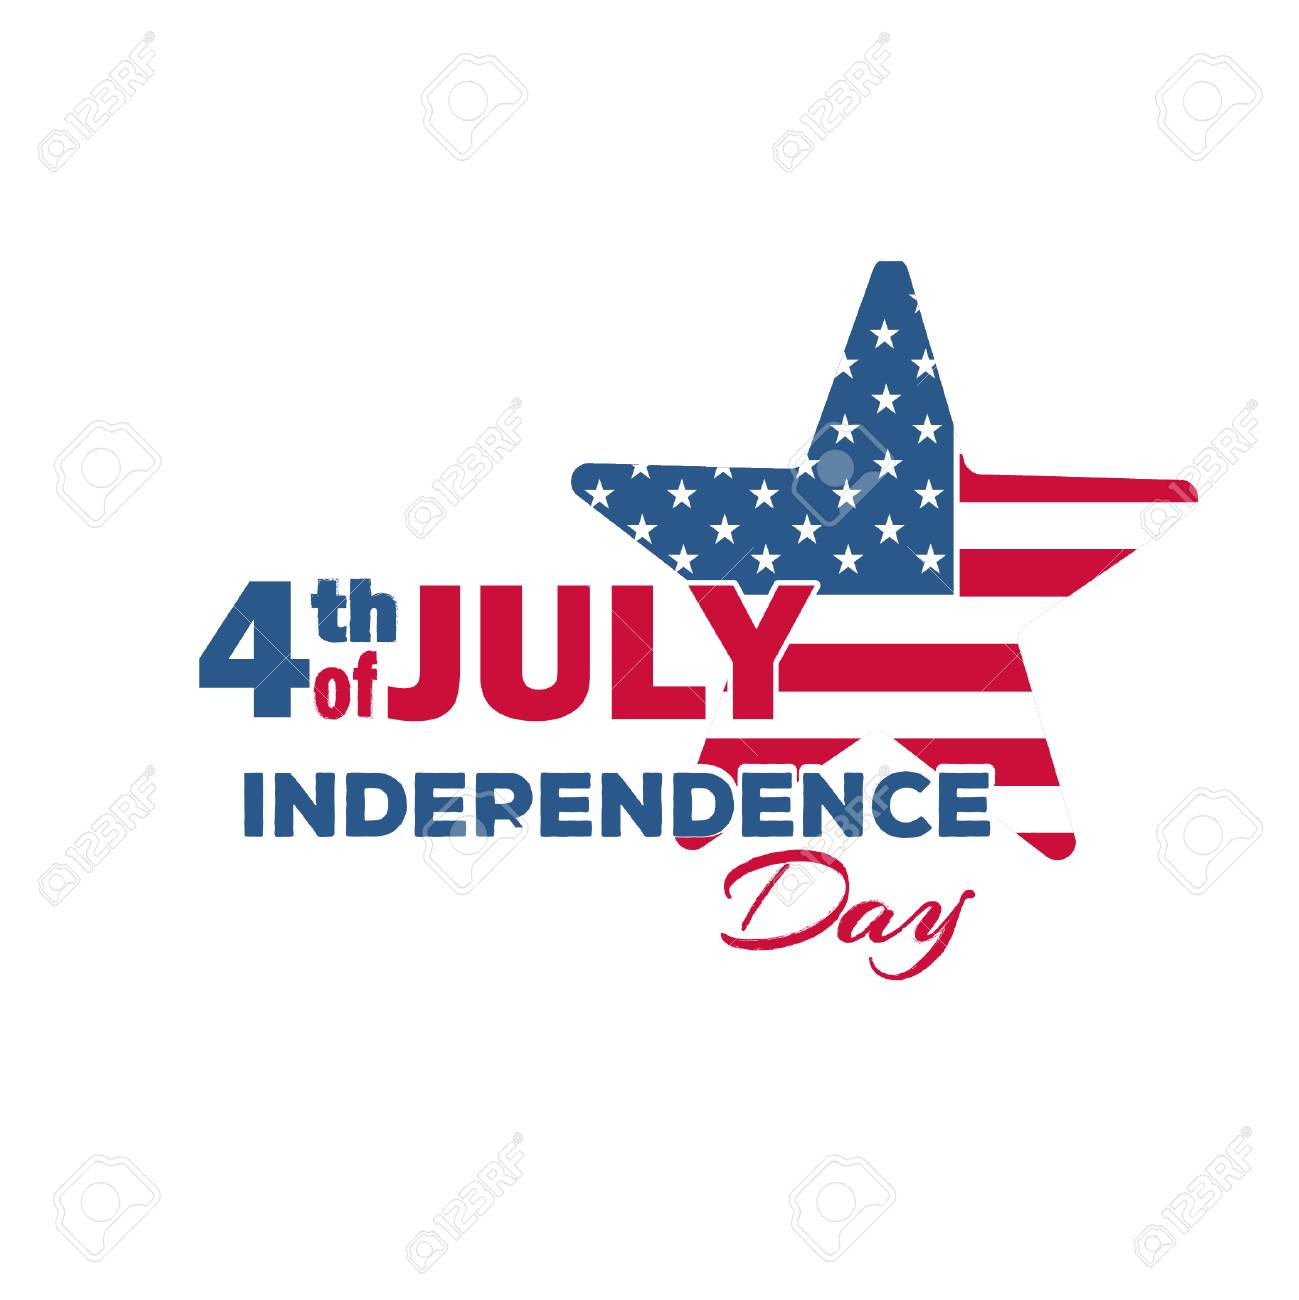 1219 Independence Day free clipart.